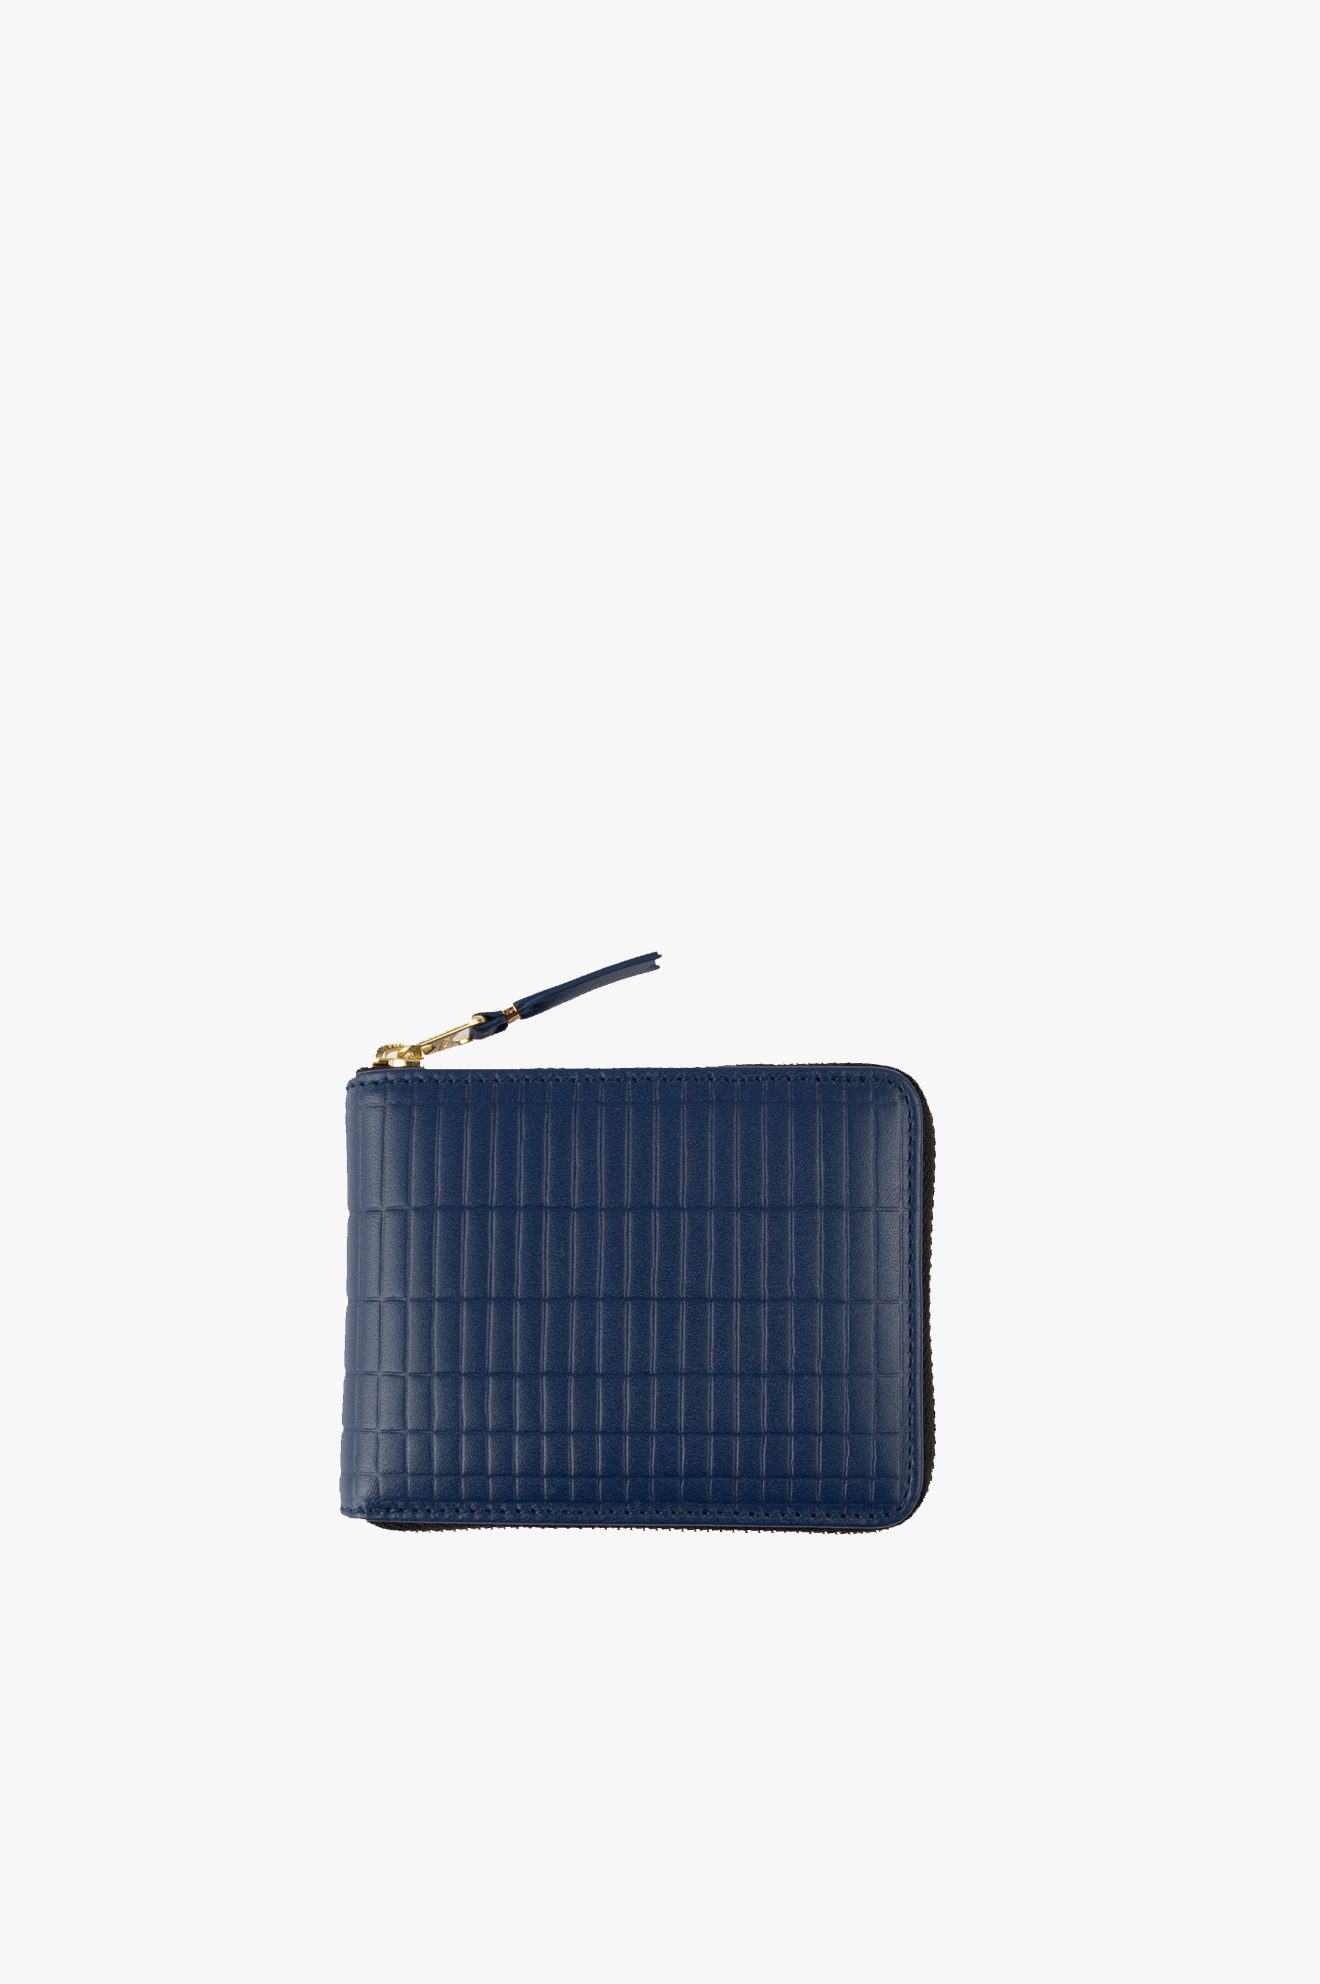 Brick Wallet Navy SA7100